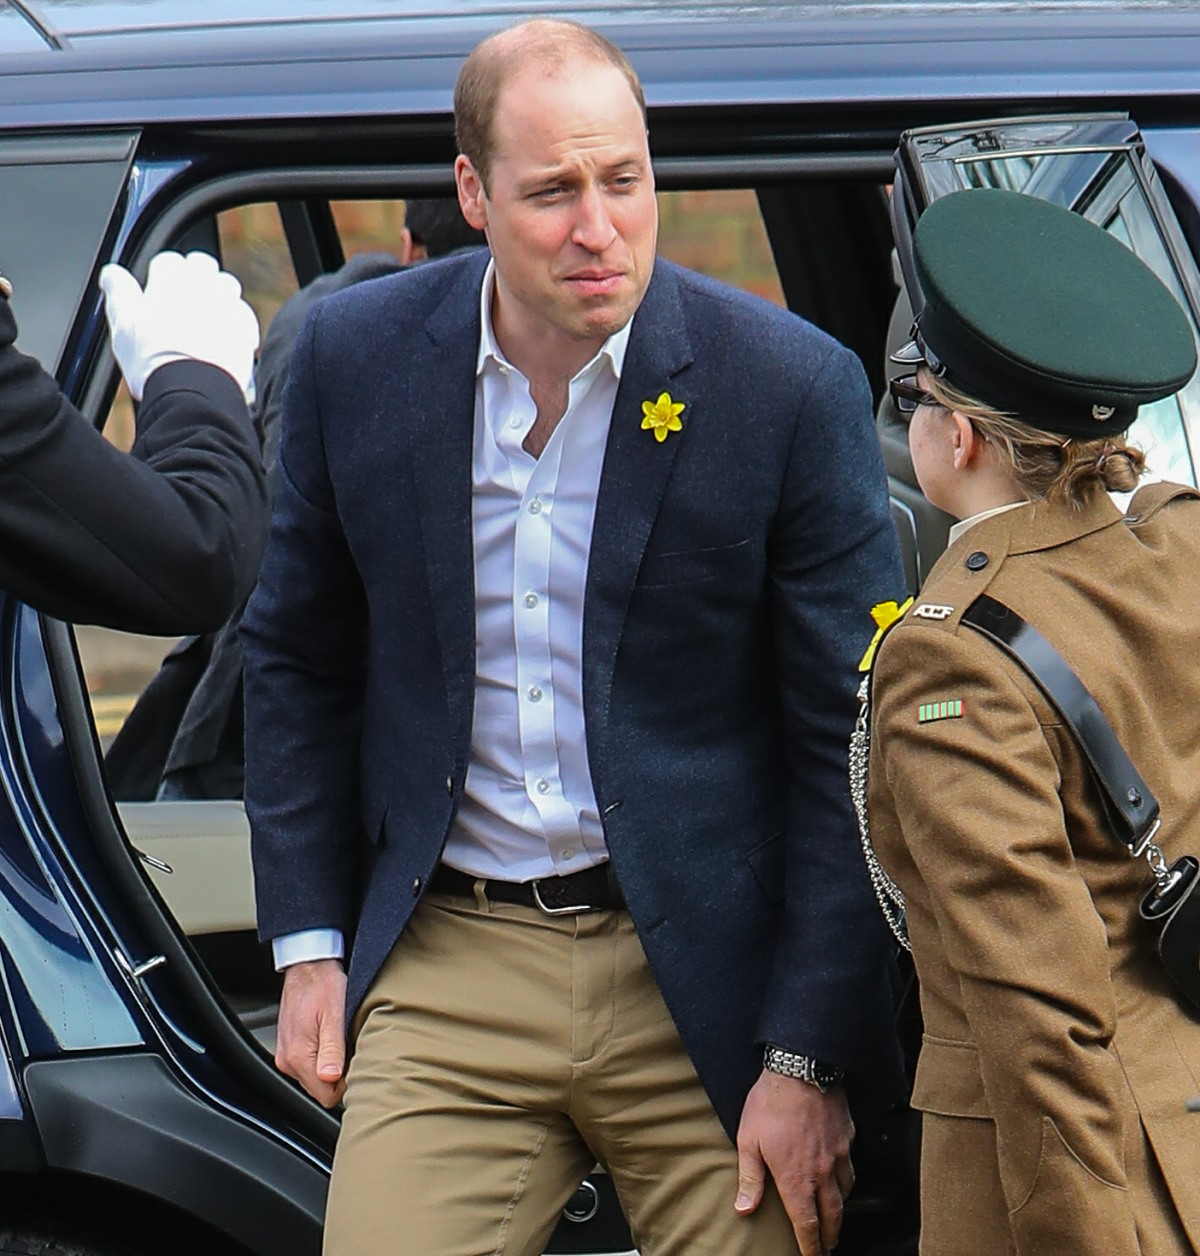 Duke involving Cambridge, Patron involving SkillForce, off <a class='fecha' href='https://wallinside.com/post-57756387-prince-william-is-back-on-shift-at-the-eaaa-following-his-drunken-ski-trip.html'>read more...</a>    <div style='text-align:center' class='comment_new'><a href='https://wallinside.com/post-57756387-prince-william-is-back-on-shift-at-the-eaaa-following-his-drunken-ski-trip.html'>Share</a></div> <br /><hr class='style-two'>    </div>    </article>   <article class=